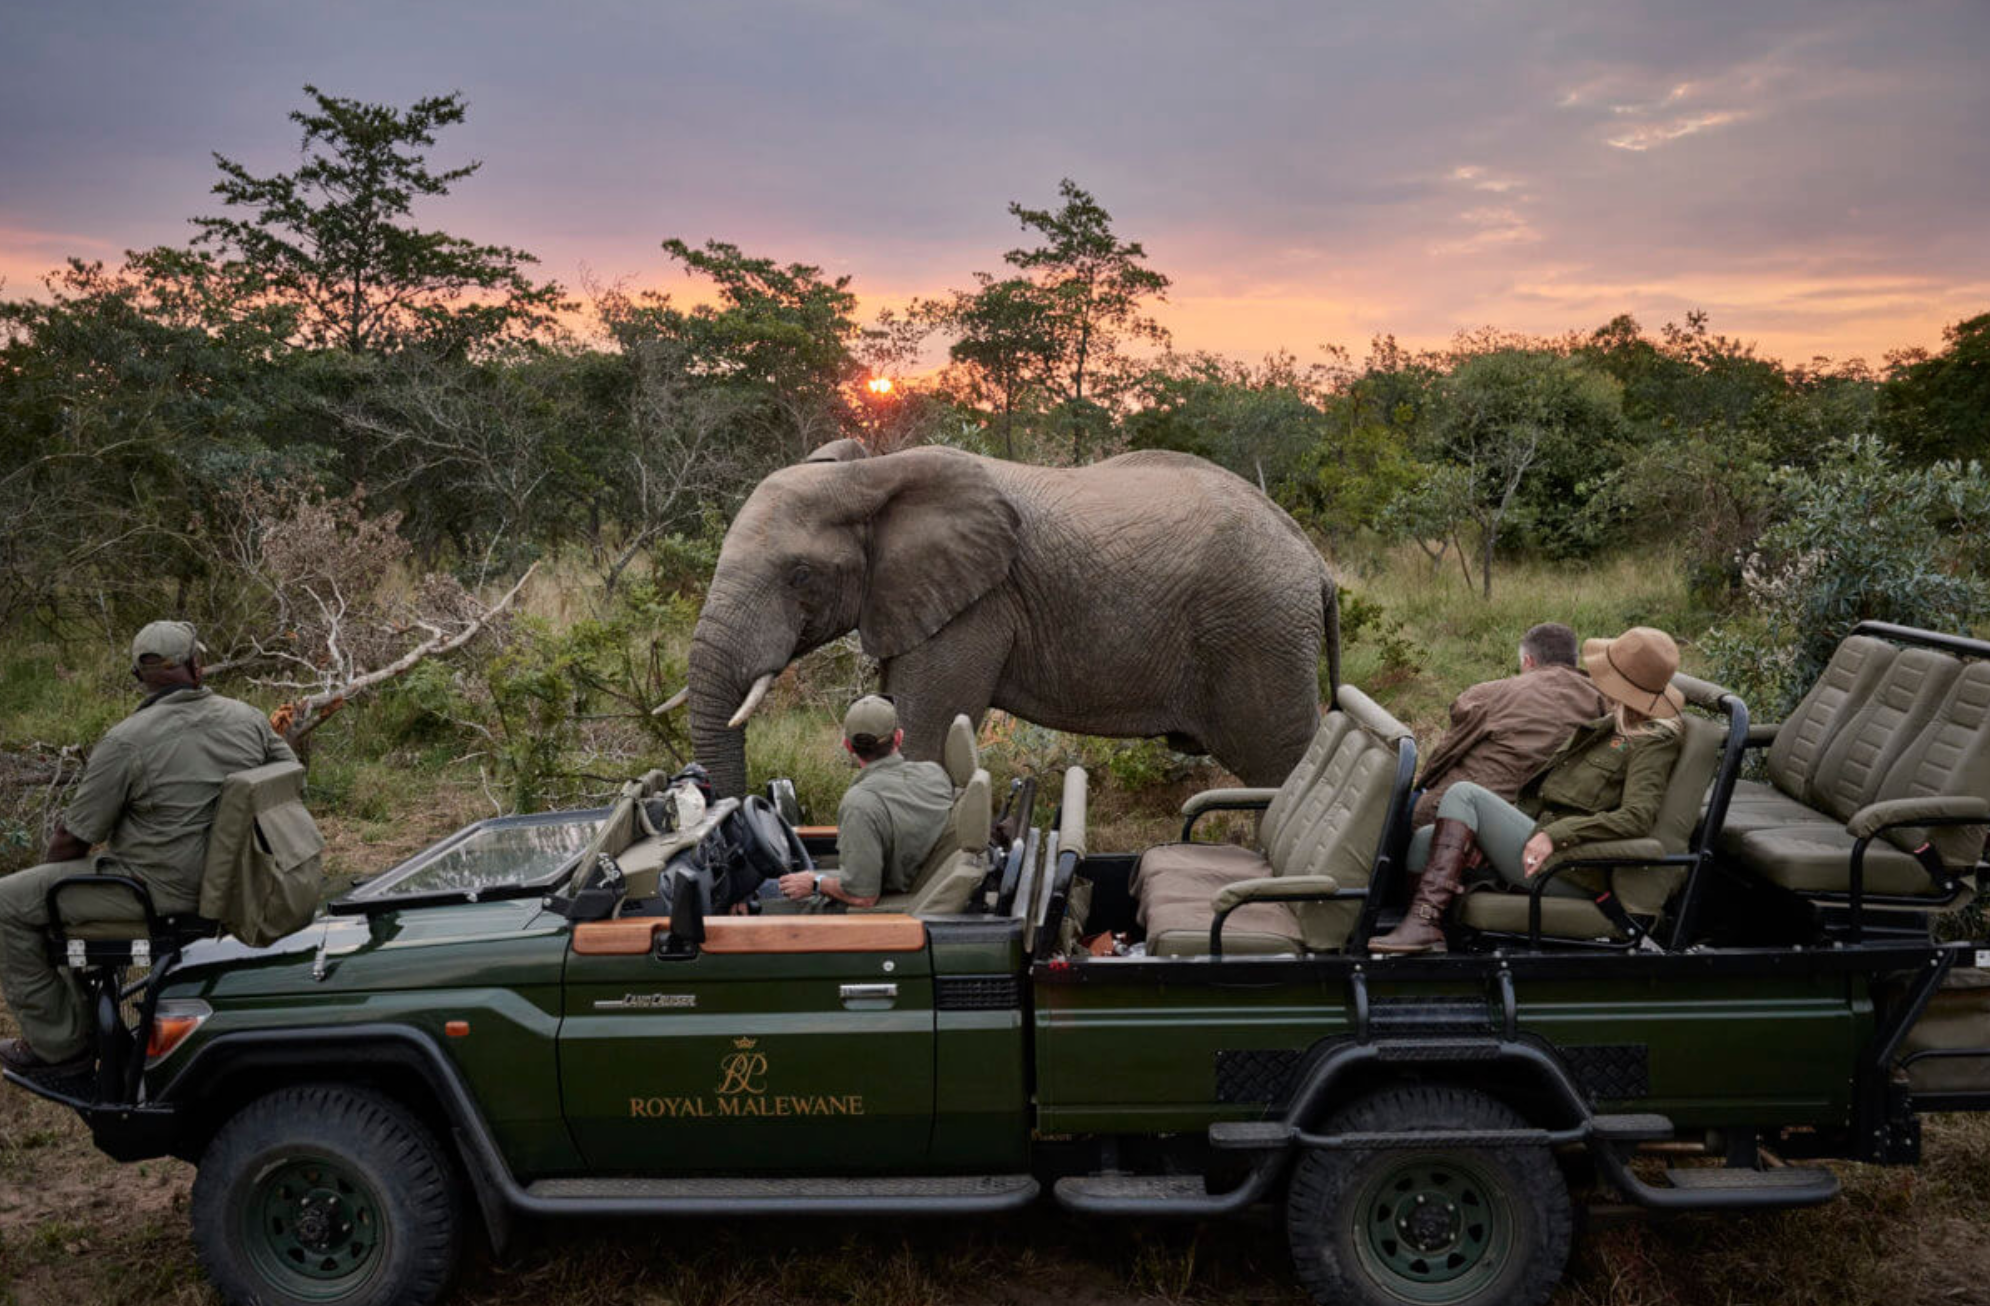 Up close and personal with the Big 5 at Royal Malewane, a leading luxury Kruger Park Safari Lodge by the Royal Portfolio